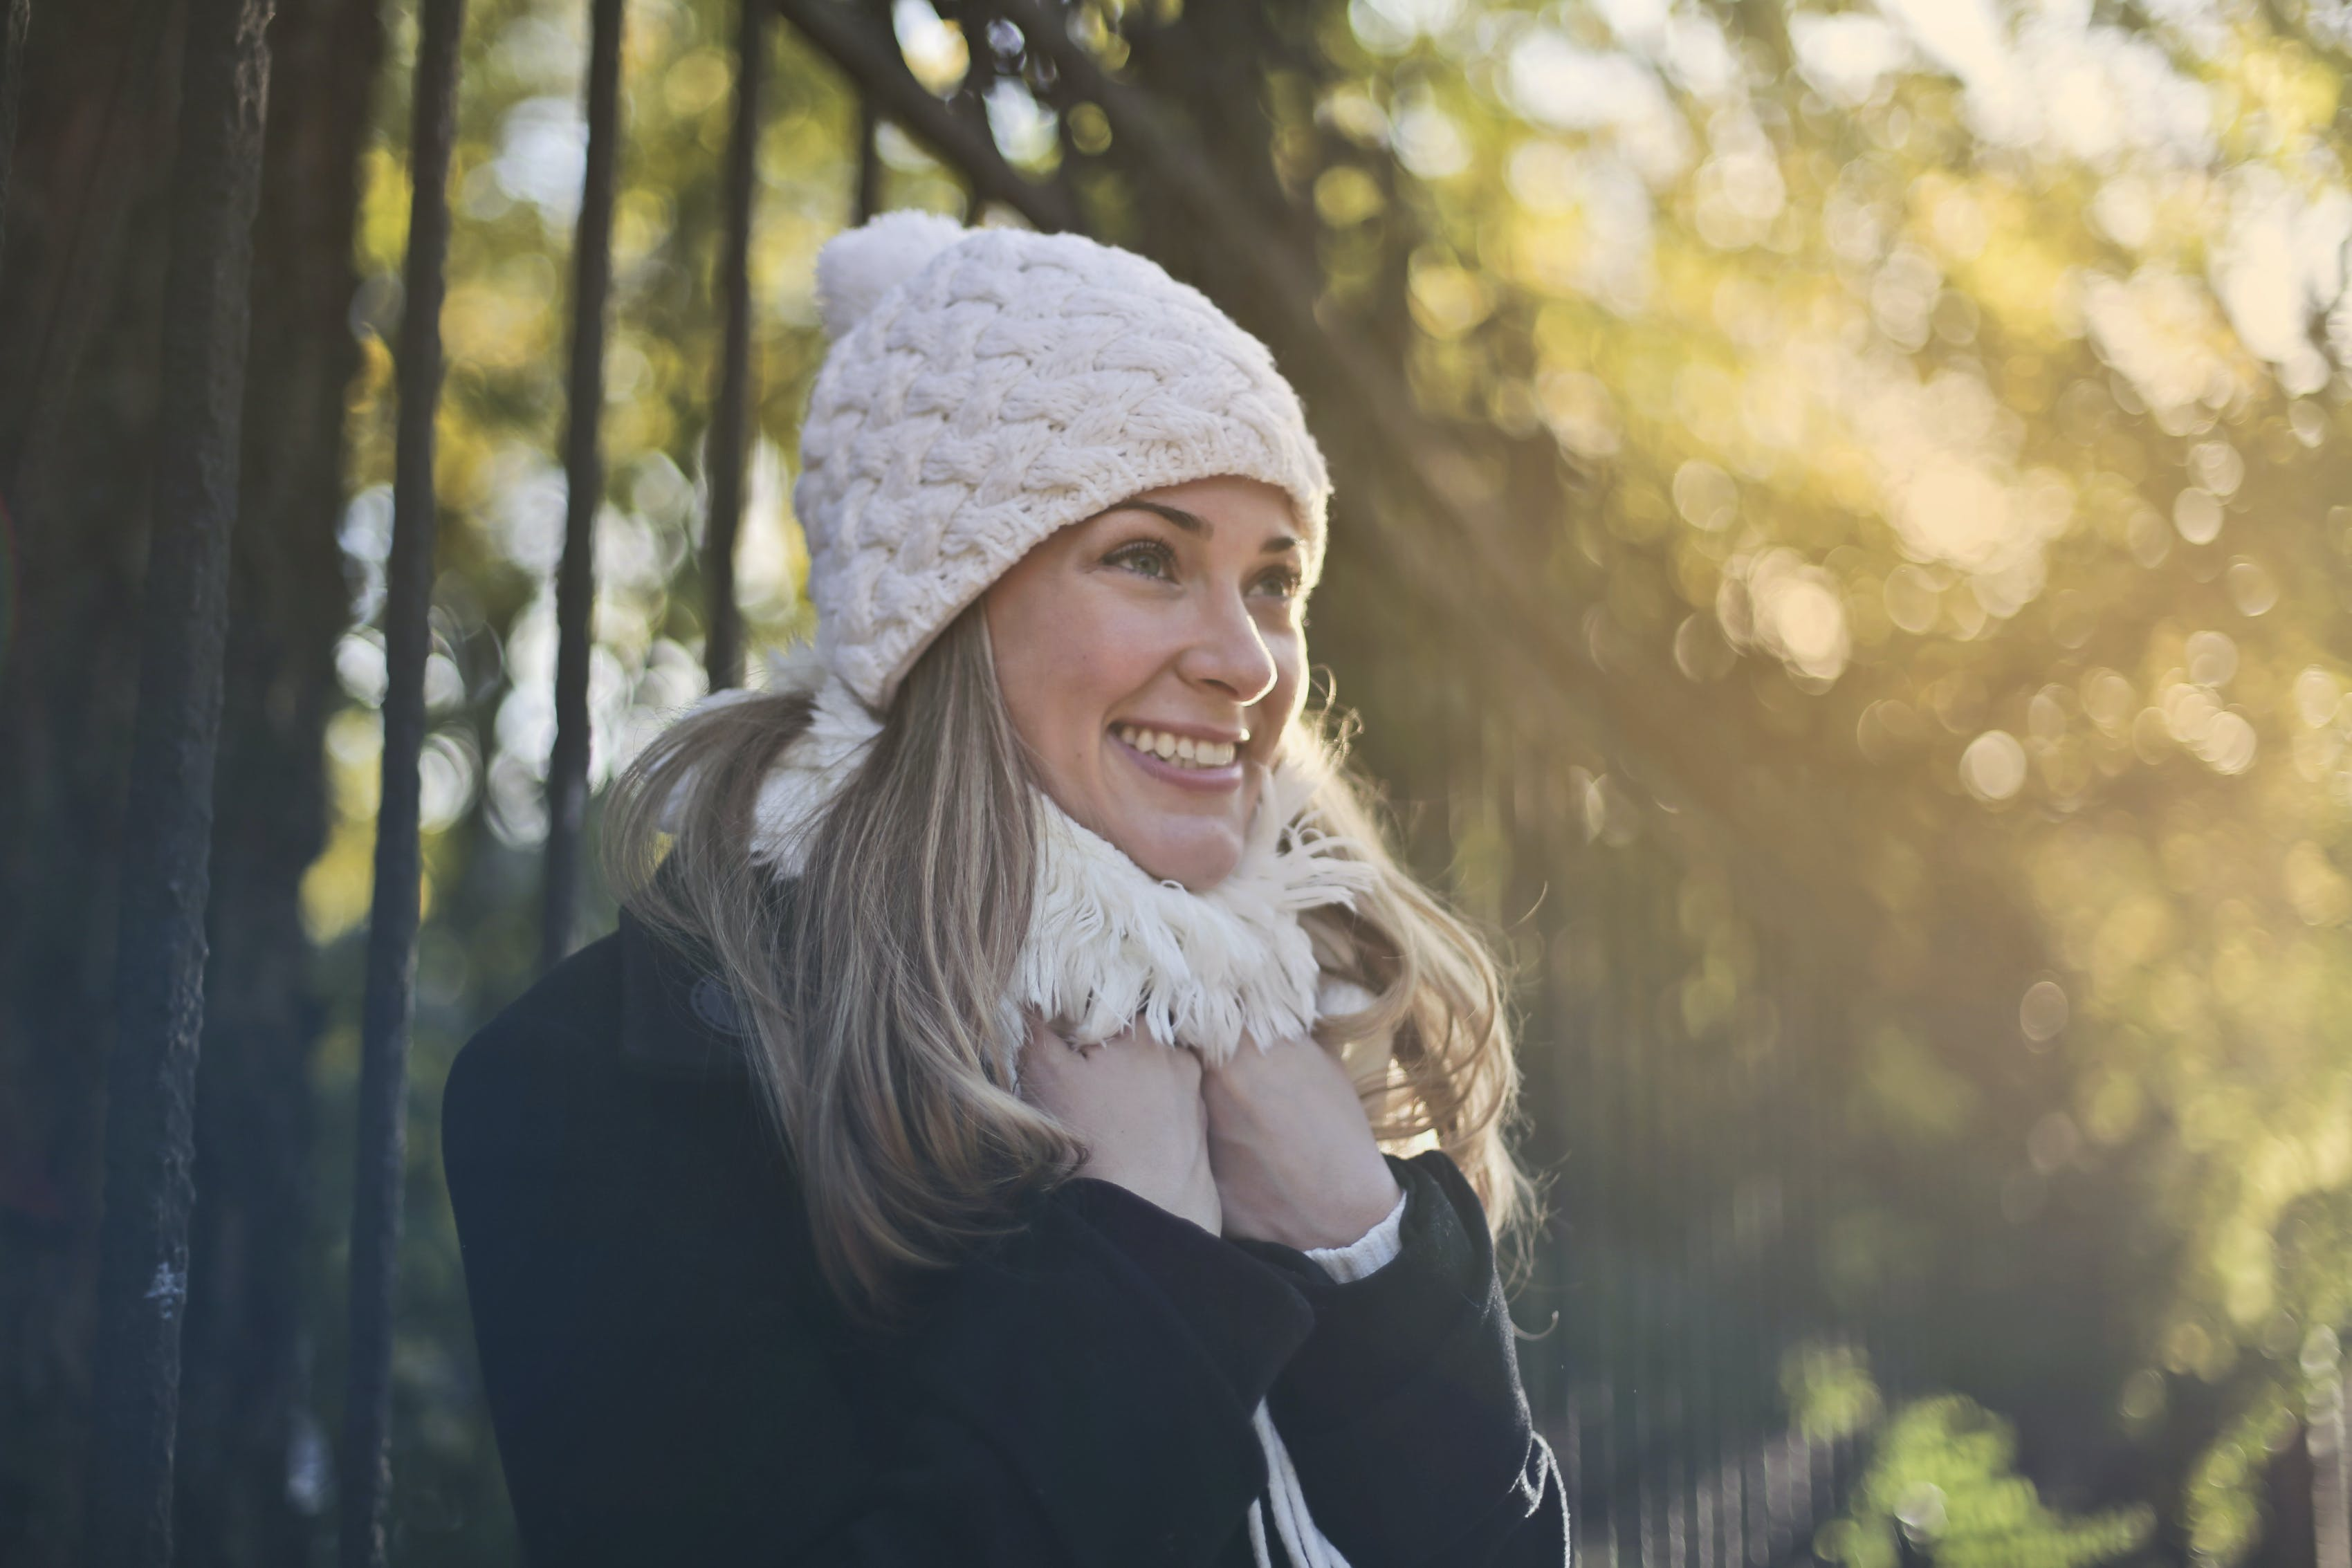 Photography of Woman in Black Jacket and White Knit Cap Smiling Next to Black Metal Fence